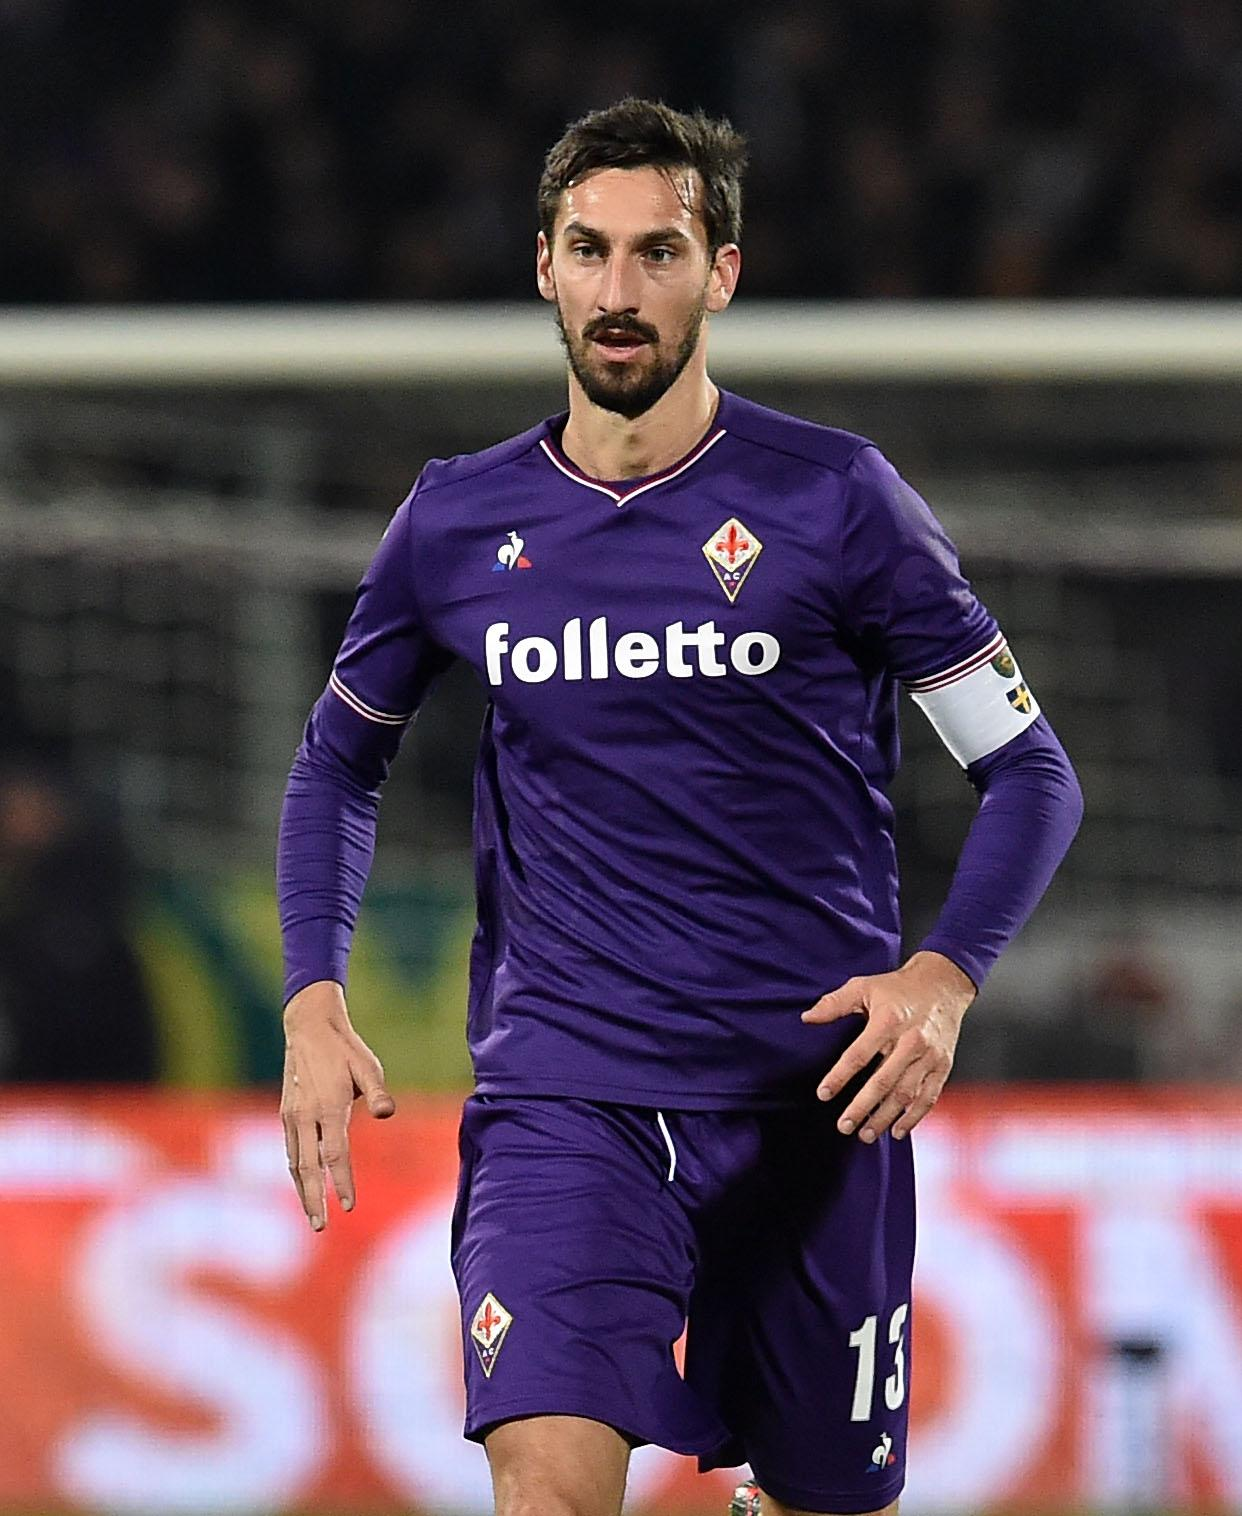 Fiorentina captain Davide Astori found dead